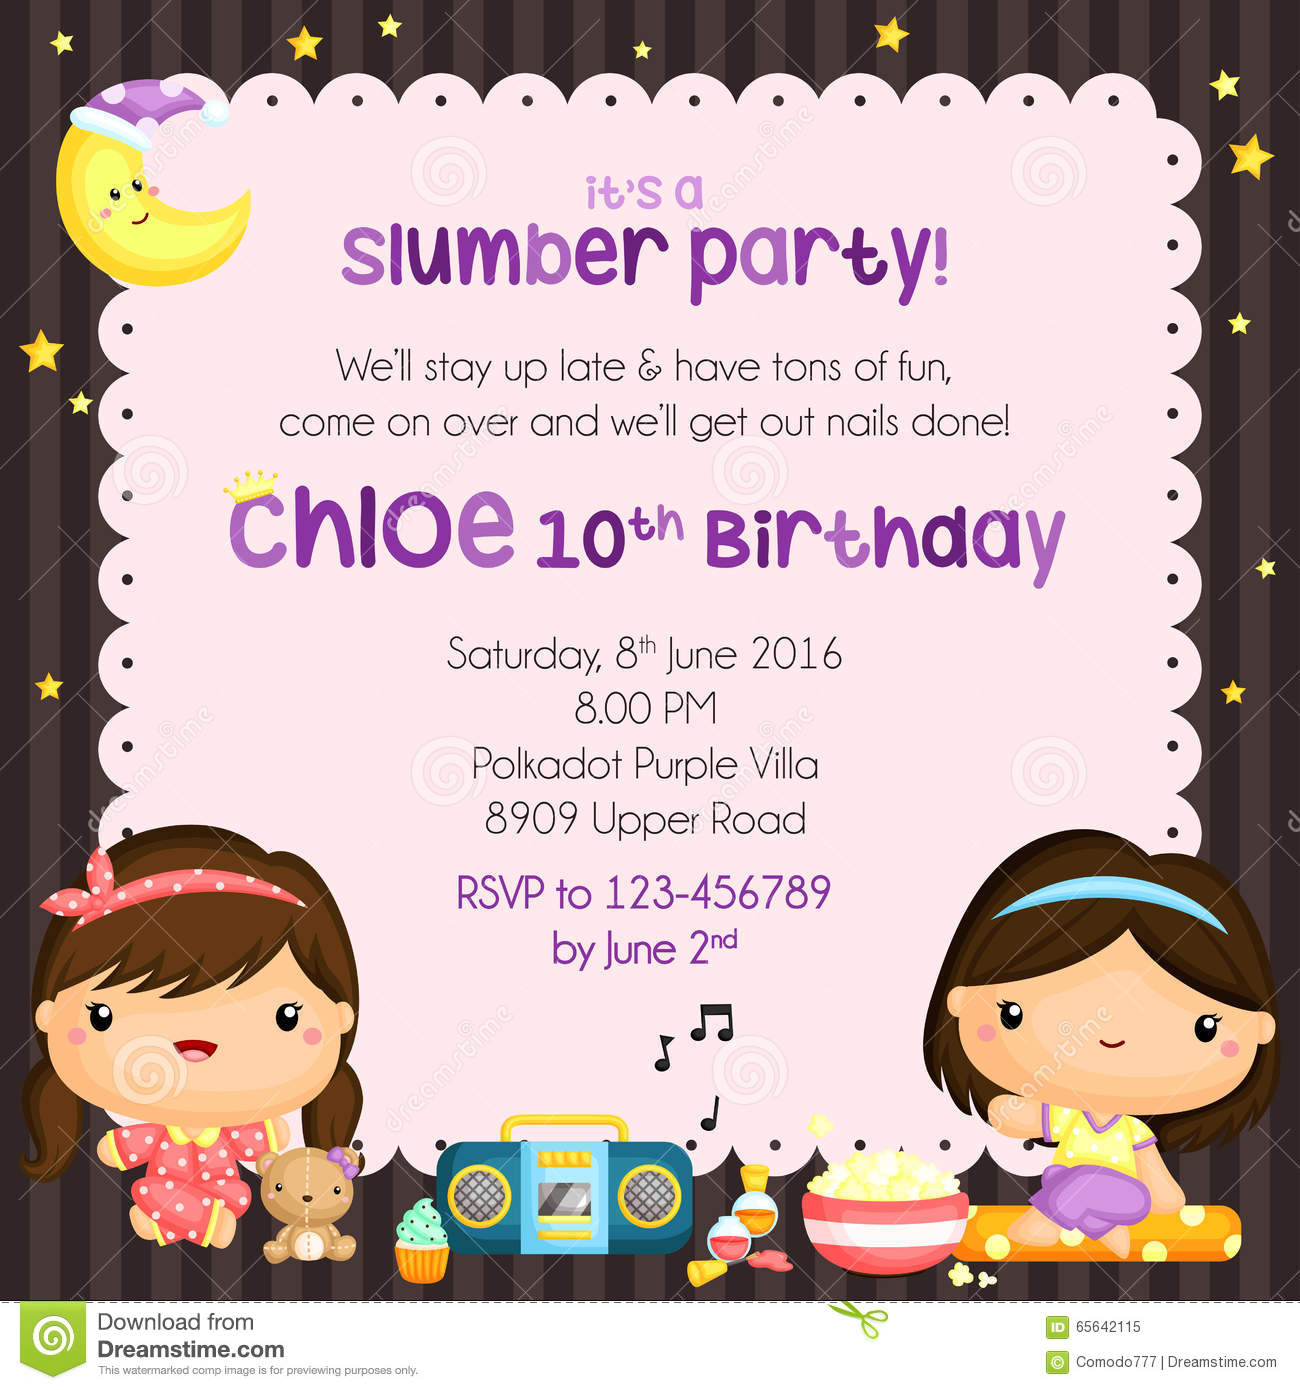 Invitation Farewell Party is best invitation template